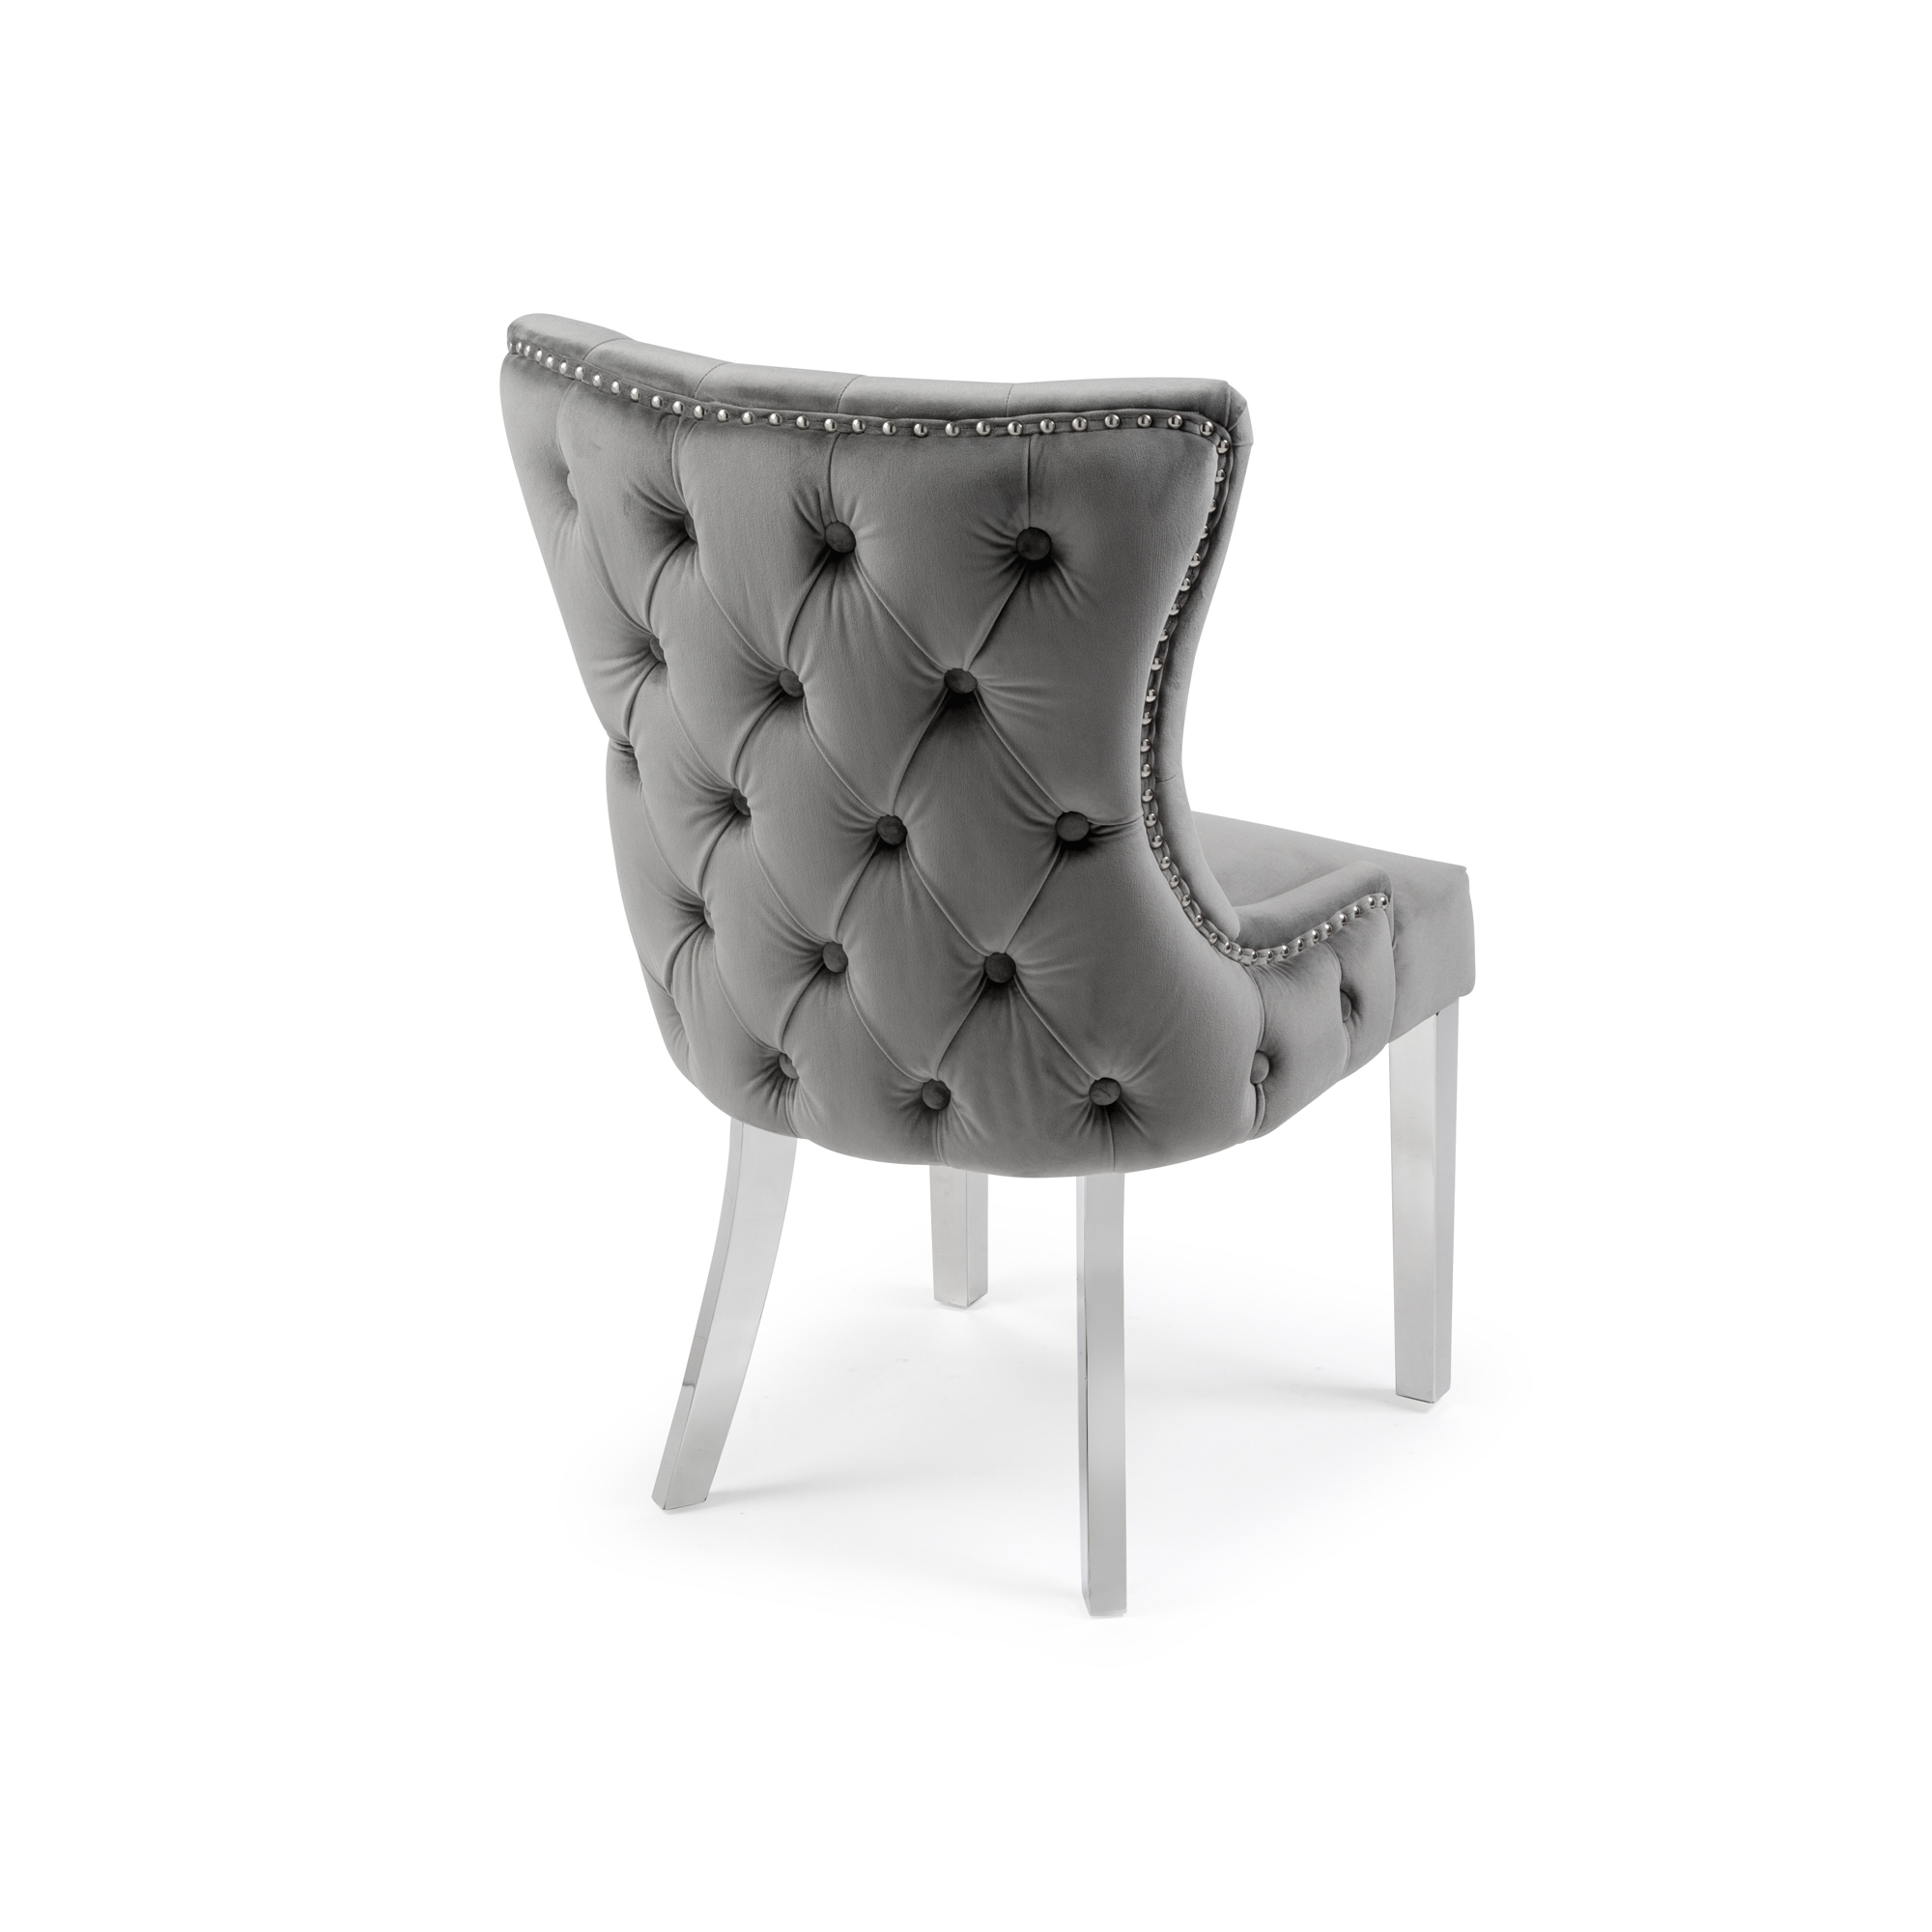 Small Circular Dining Table and Chairs Set – Grey Marble Table + 4 Buttoned Brushed Velvet Dining Chairs